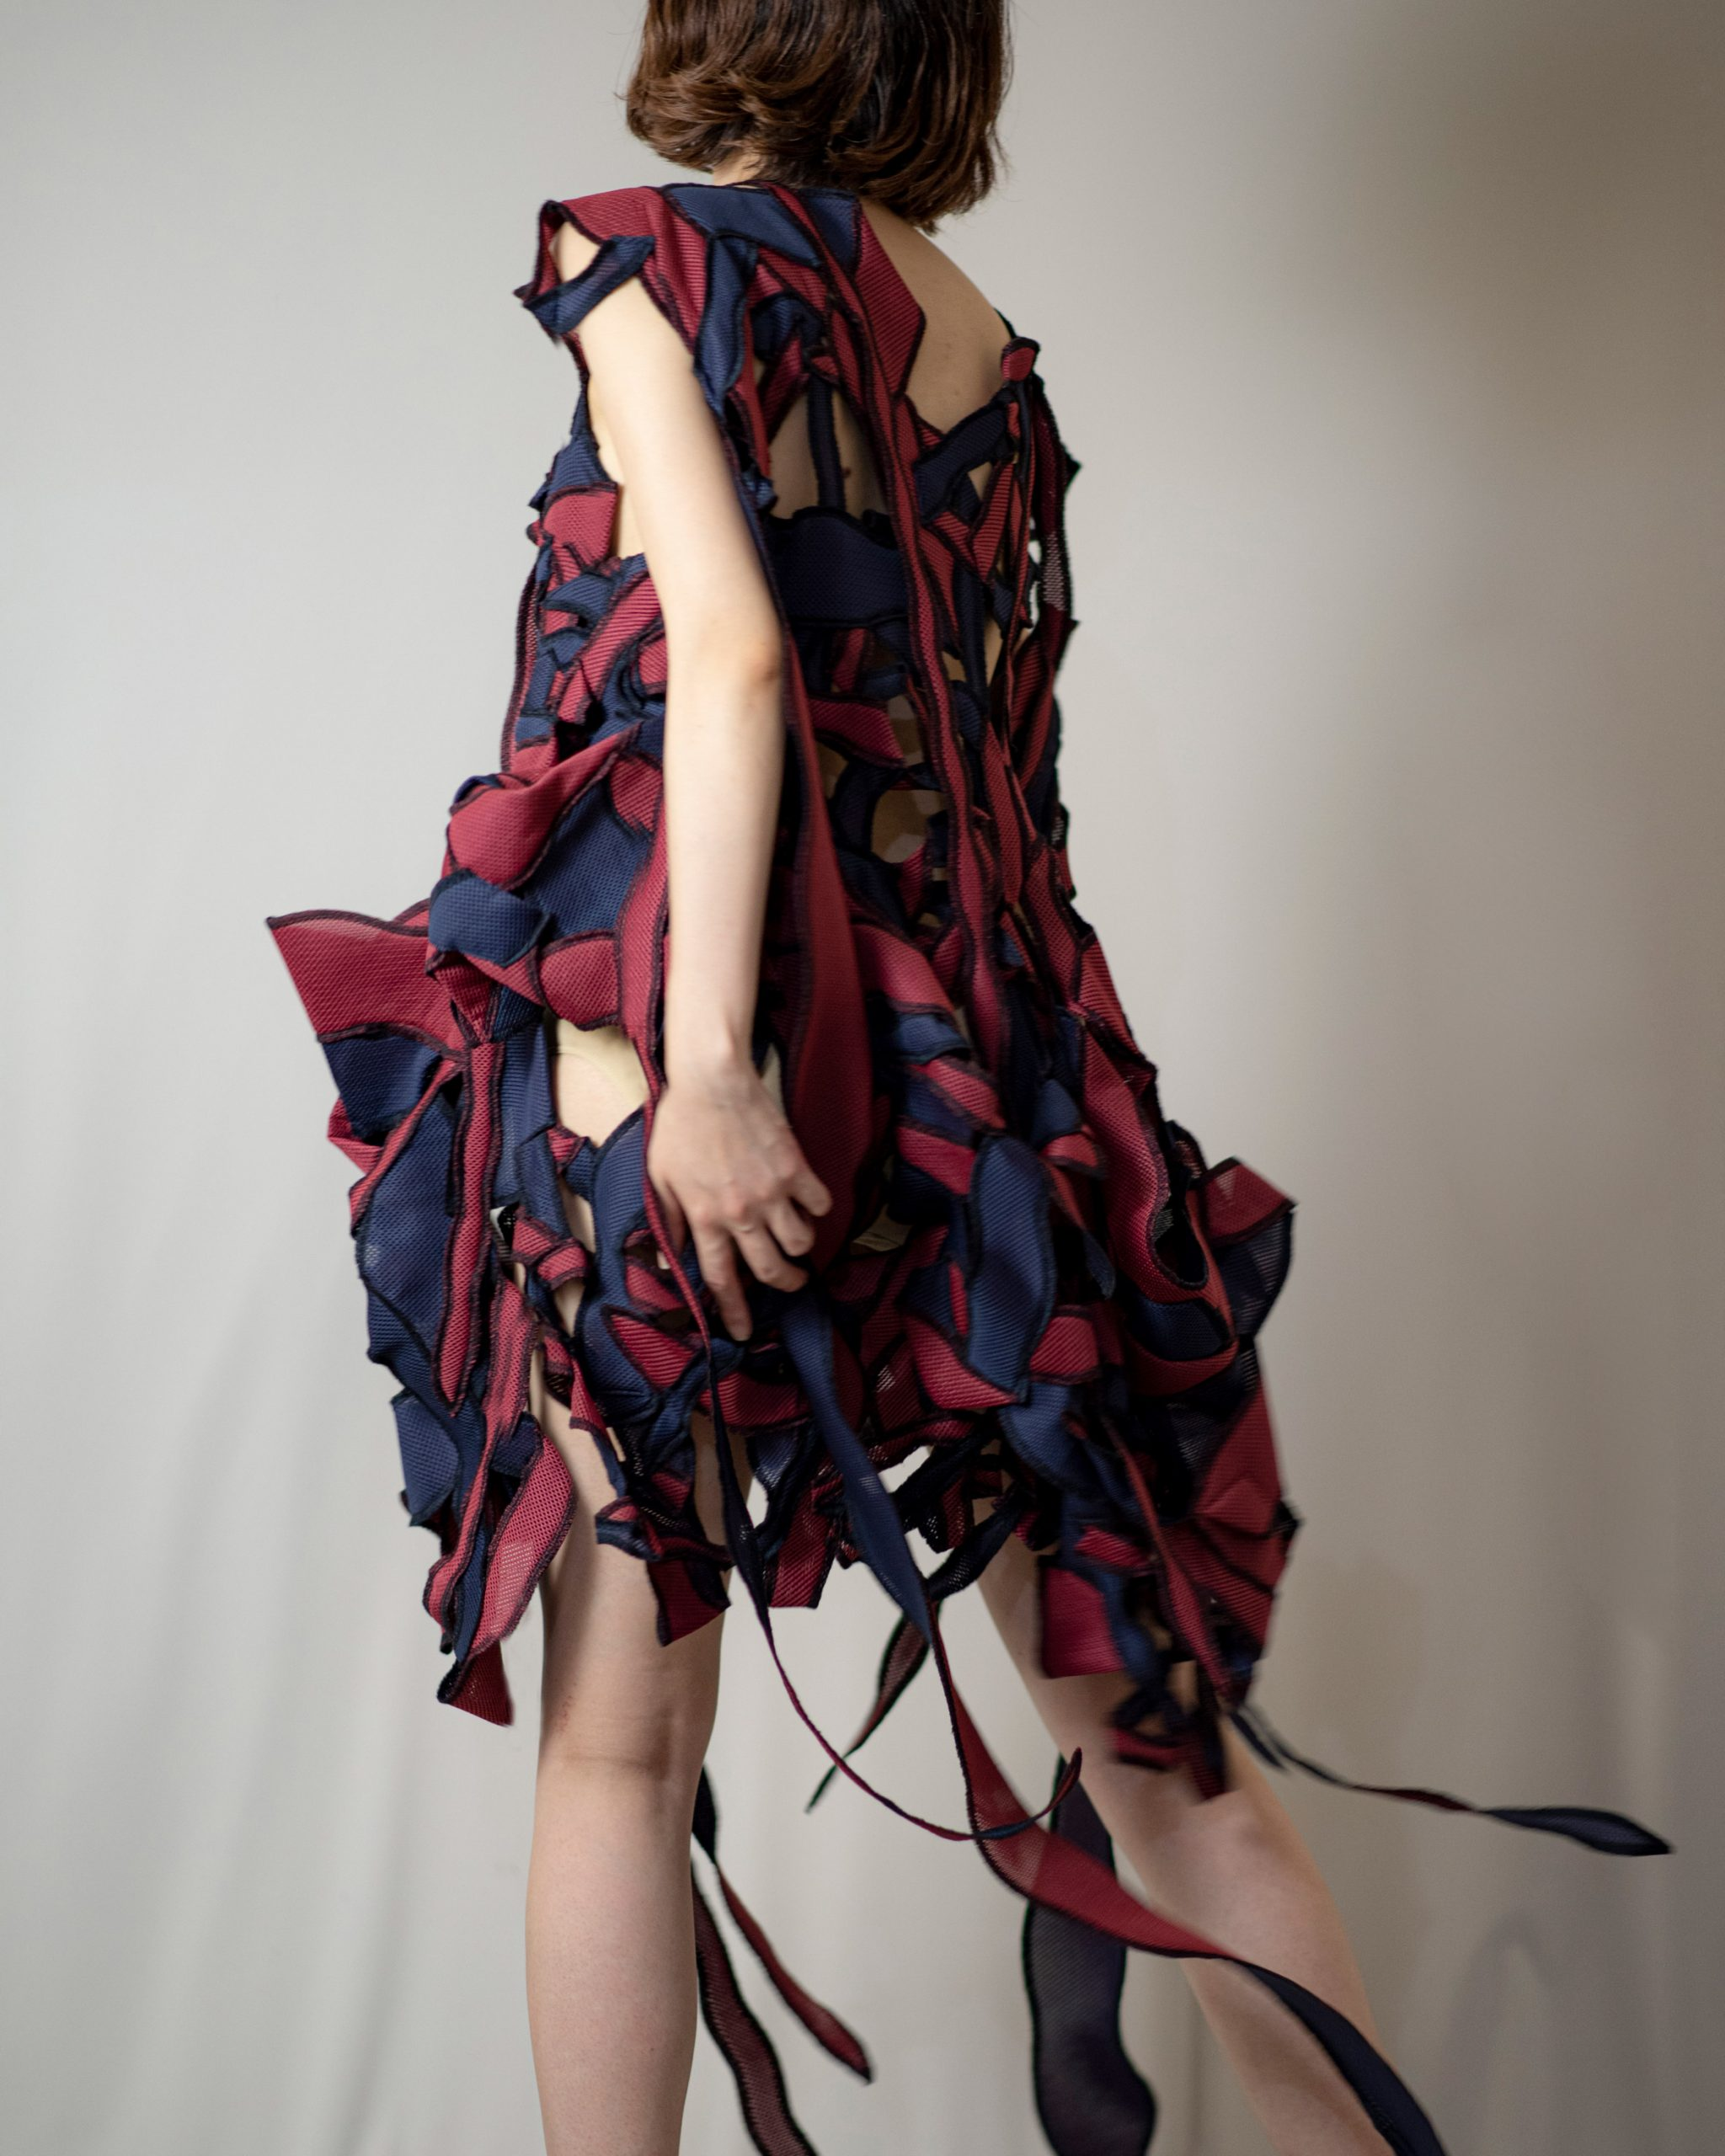 Garments have a kinetic quality to them